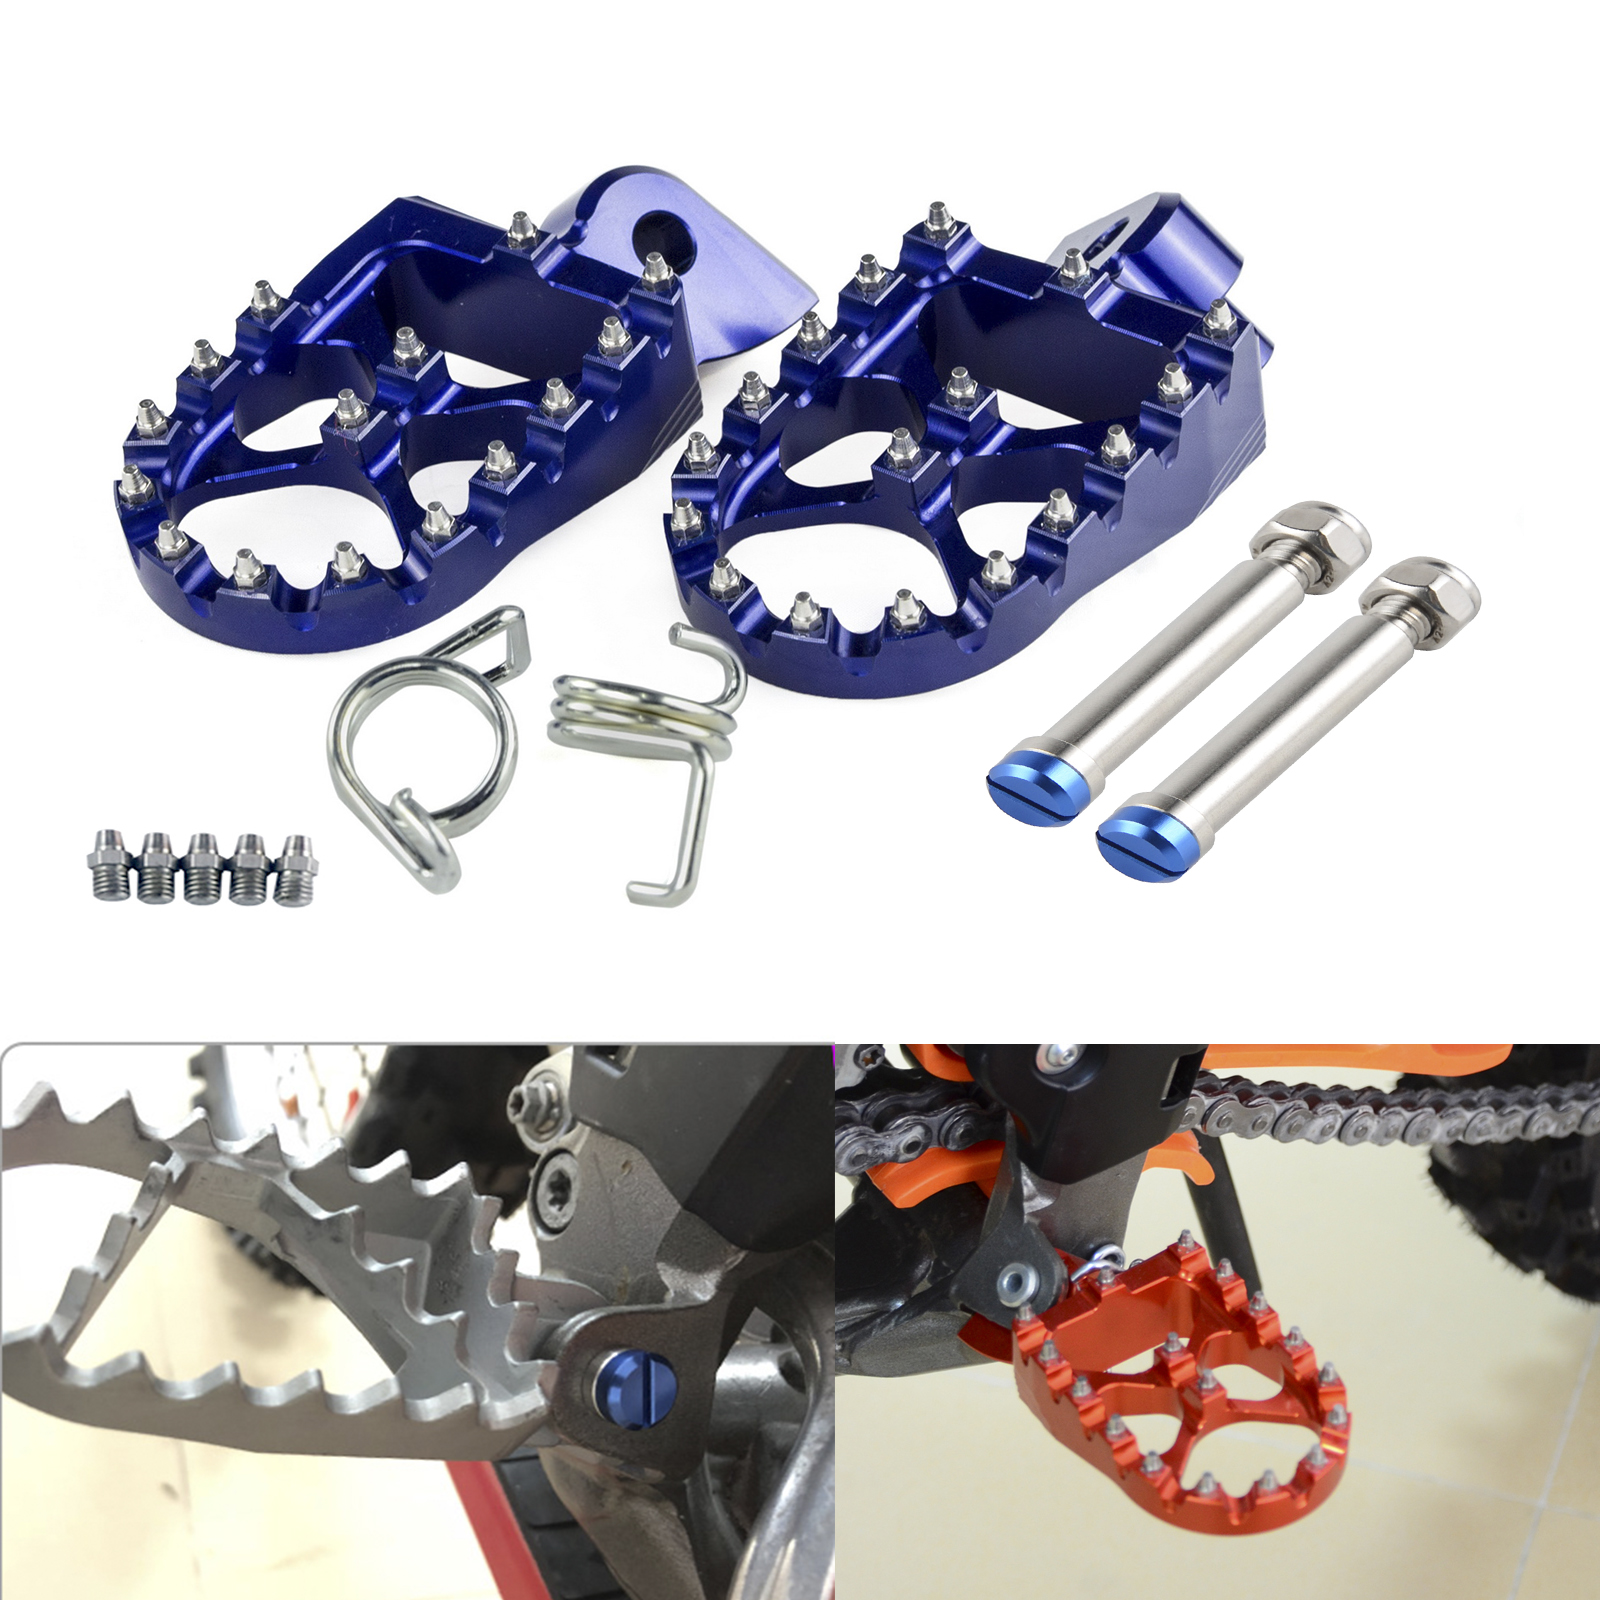 Motorcycle Footrest Foot Pegs With Pins For <font><b>BETA</b></font> 250RR <font><b>300RR</b></font> 350RR 390RR 400RR 450RR 480RR 498RR 520RR 2T 4T 2013-2018 image